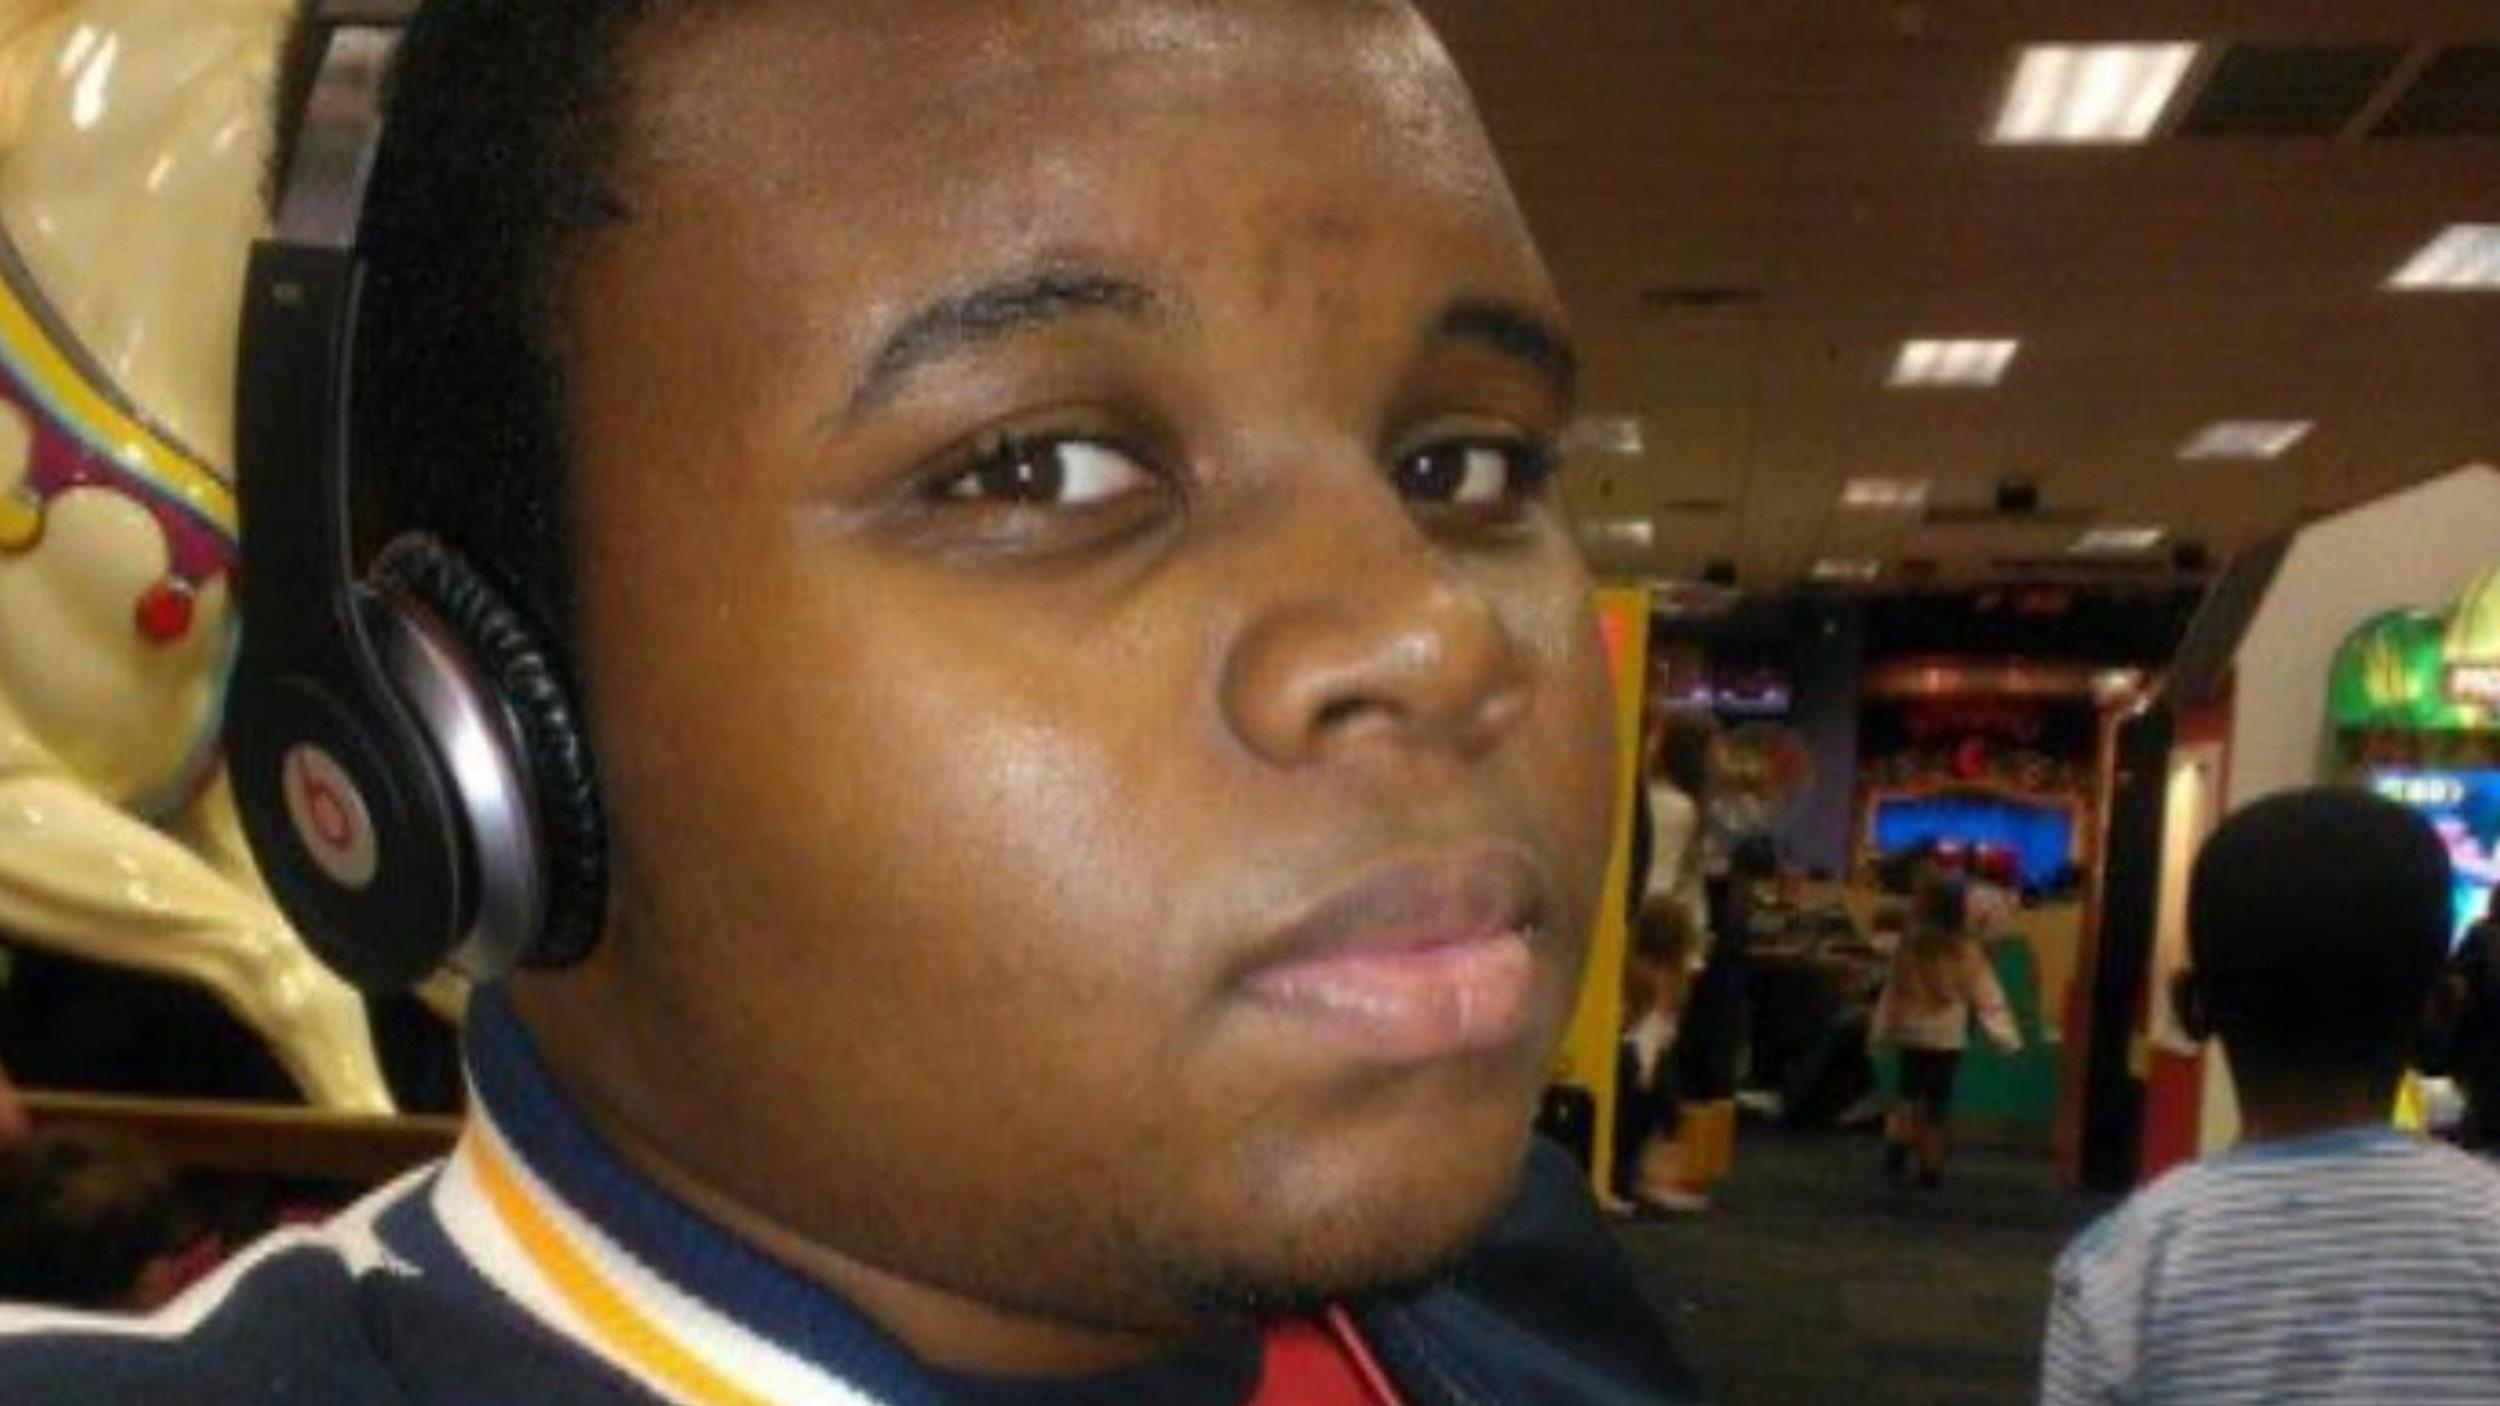 Image: Michael Brown, 18, was killed in Ferguson, Mo., near St. Louis on Saturday, Aug. 9.